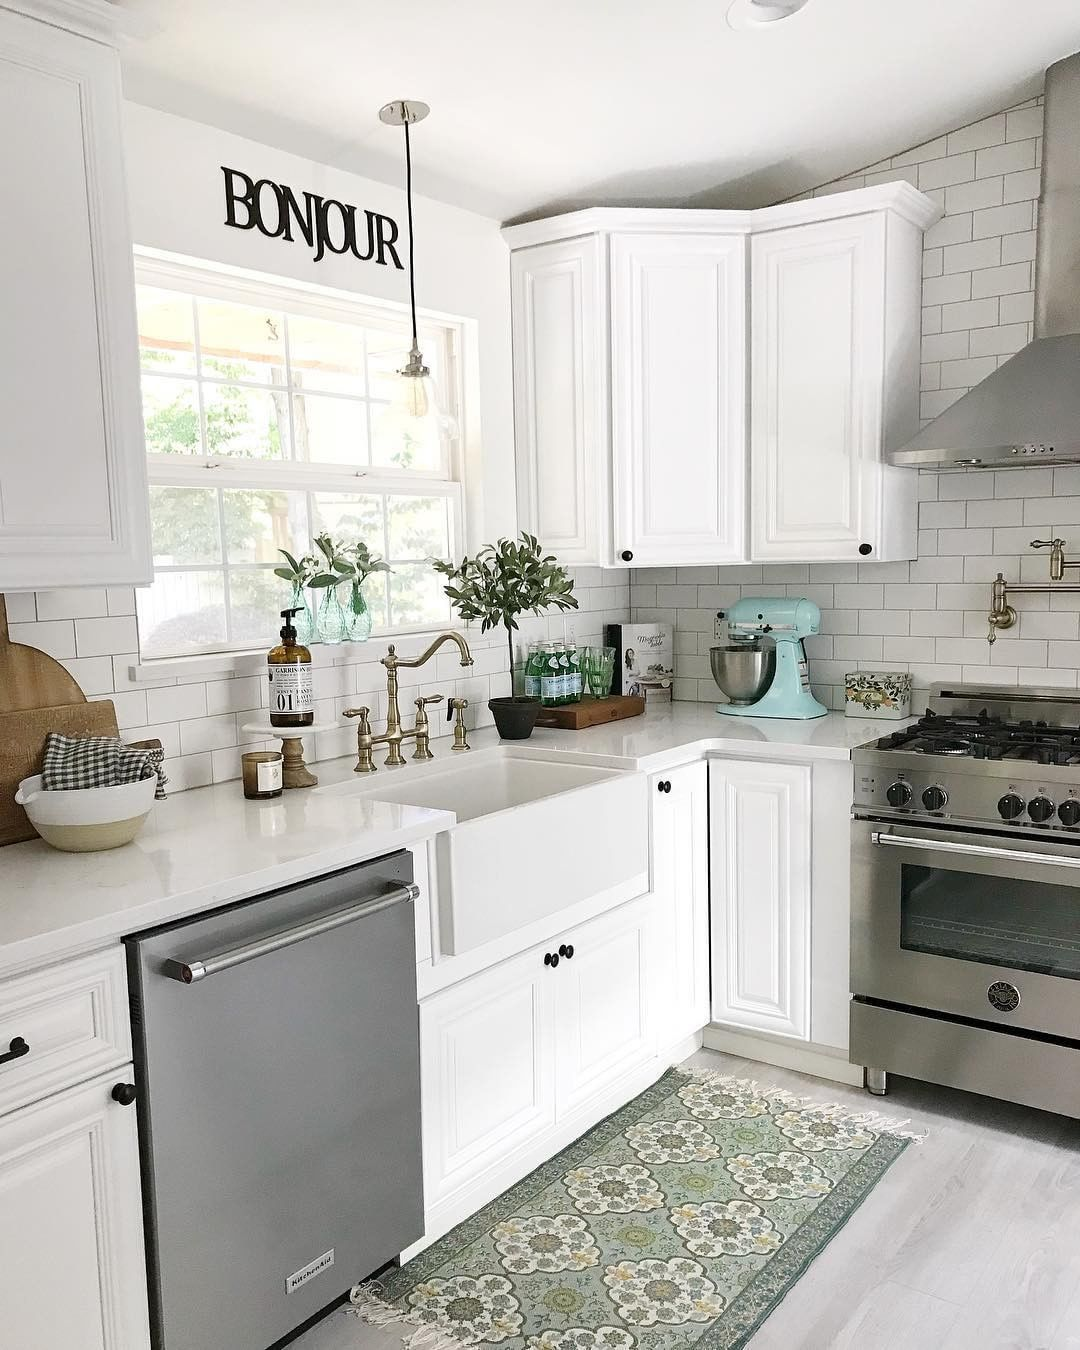 French Farmhouse Kitchen Decor With Subway Tile Walls And Backsplash, Farmhouse Sink, White